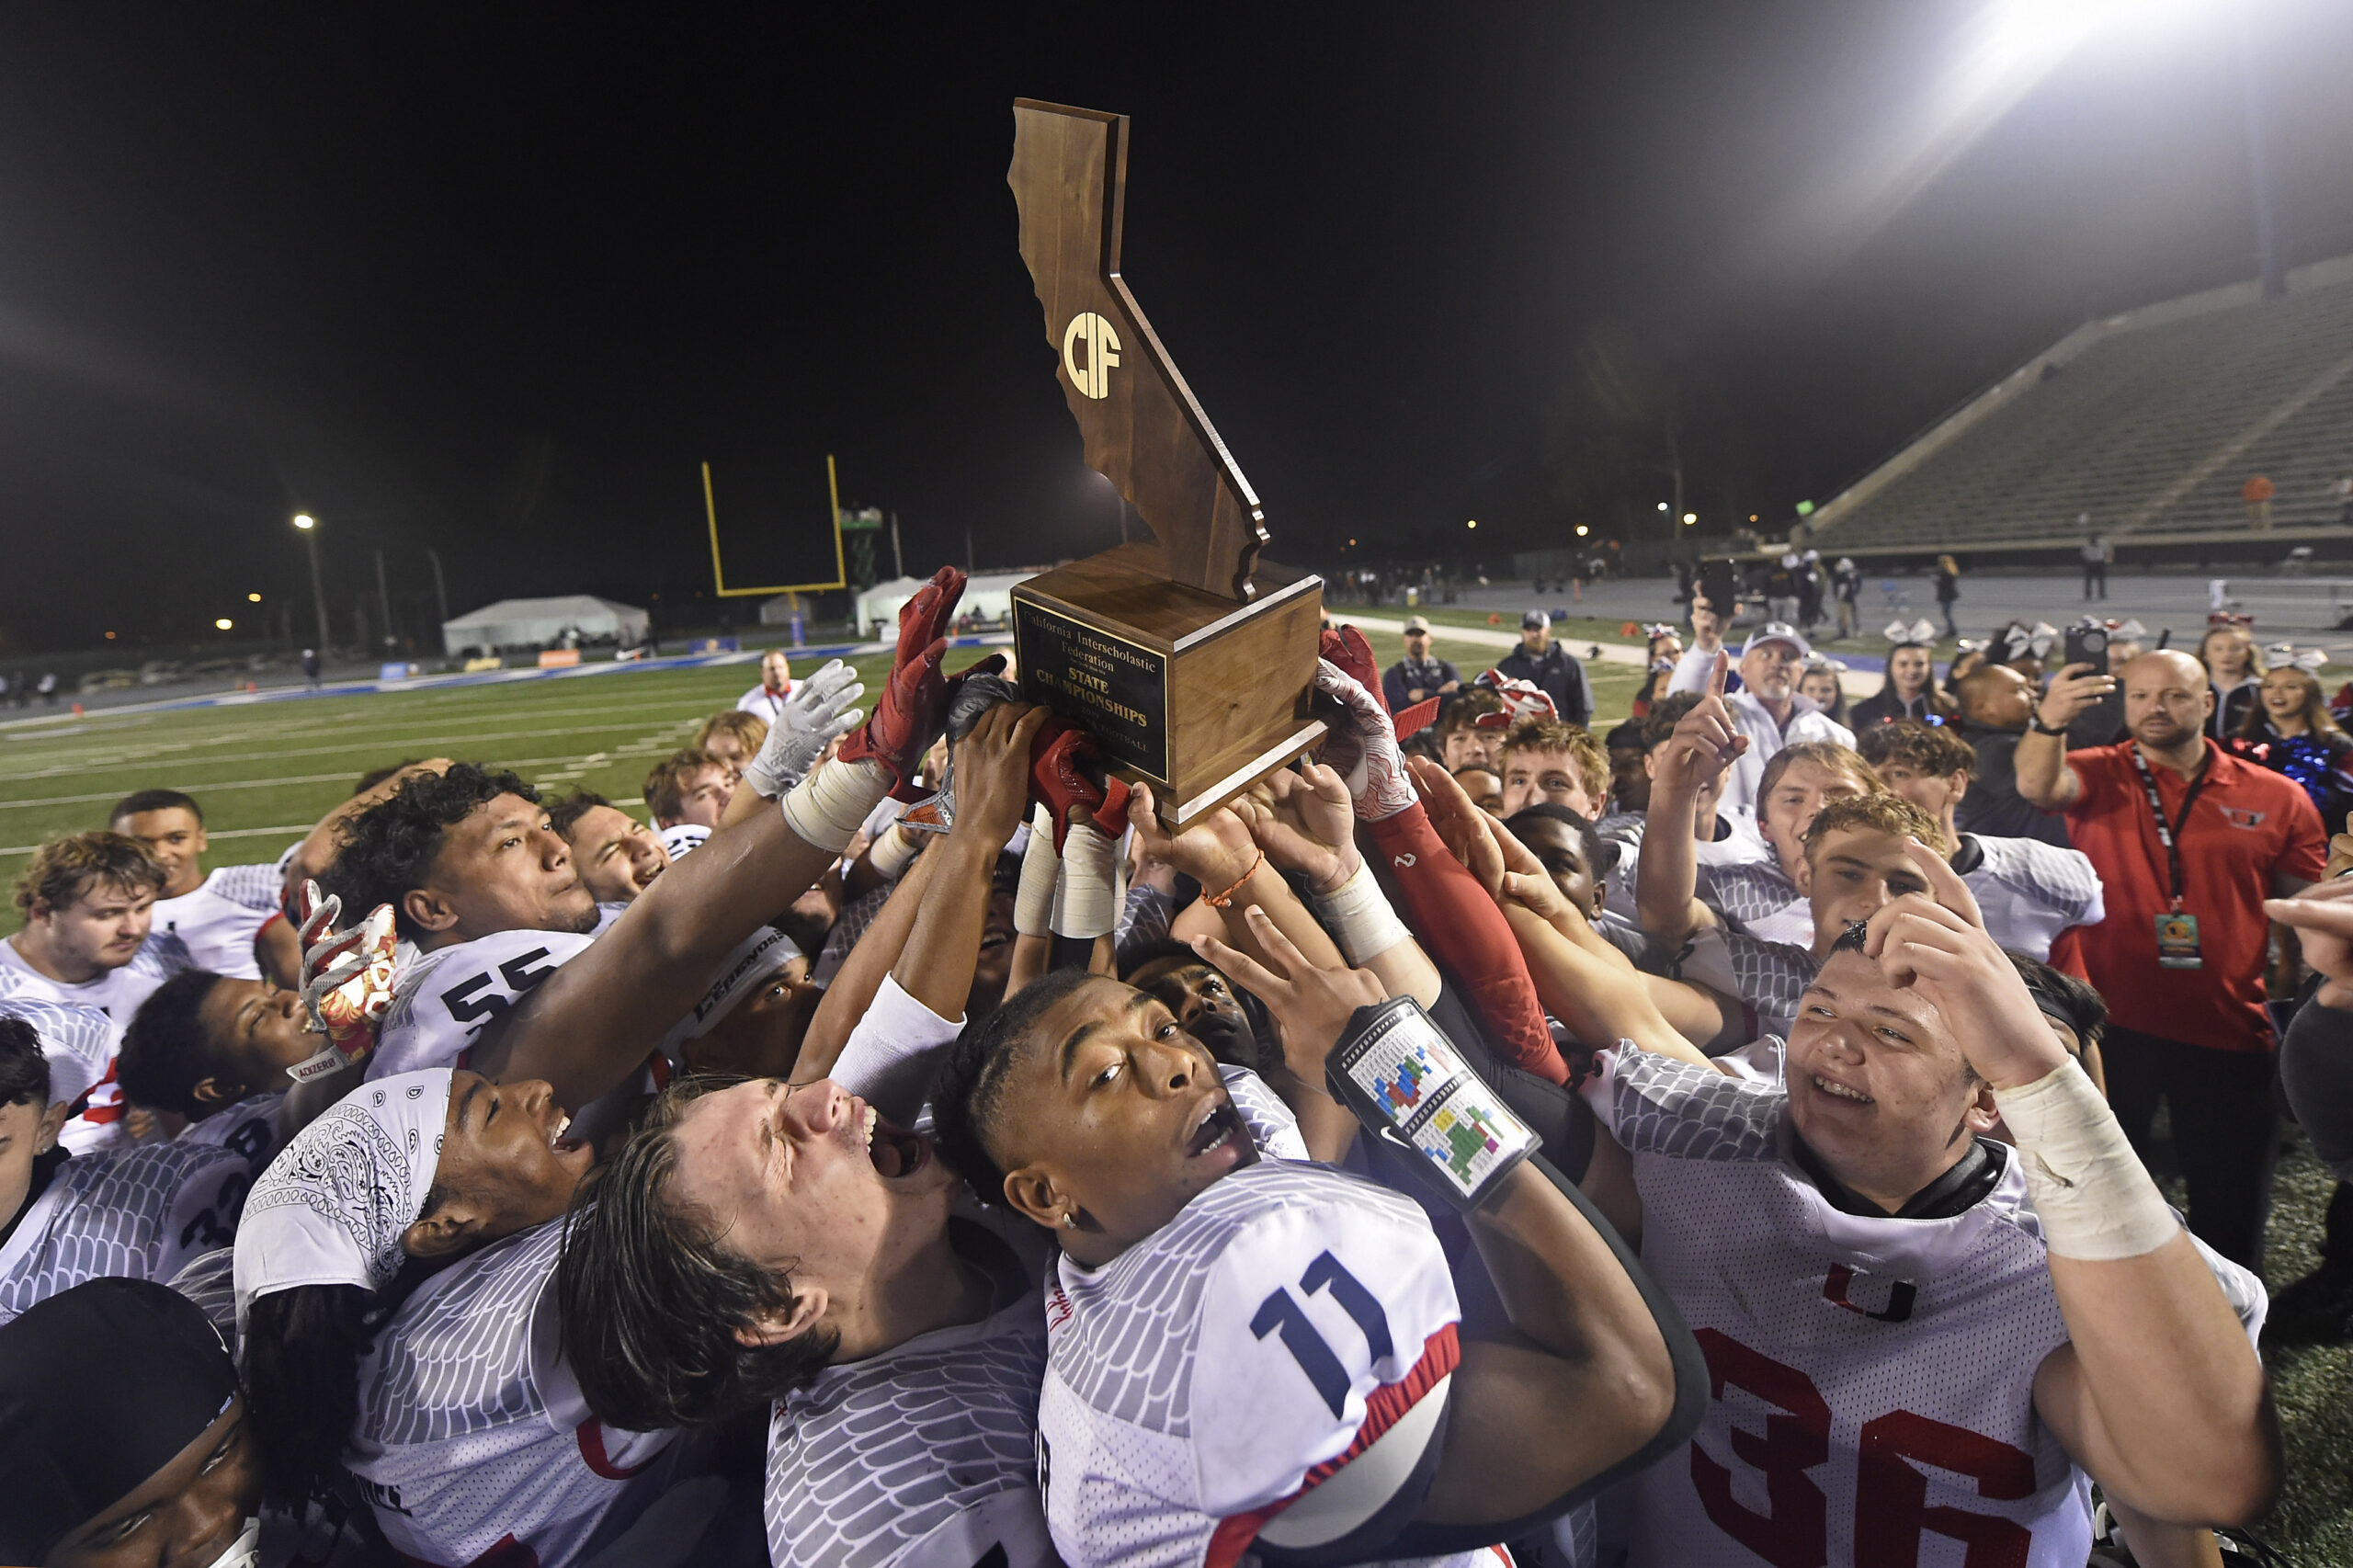 CIF State delays start of football and other fall high school sports while state works on COVID-19 guidelines